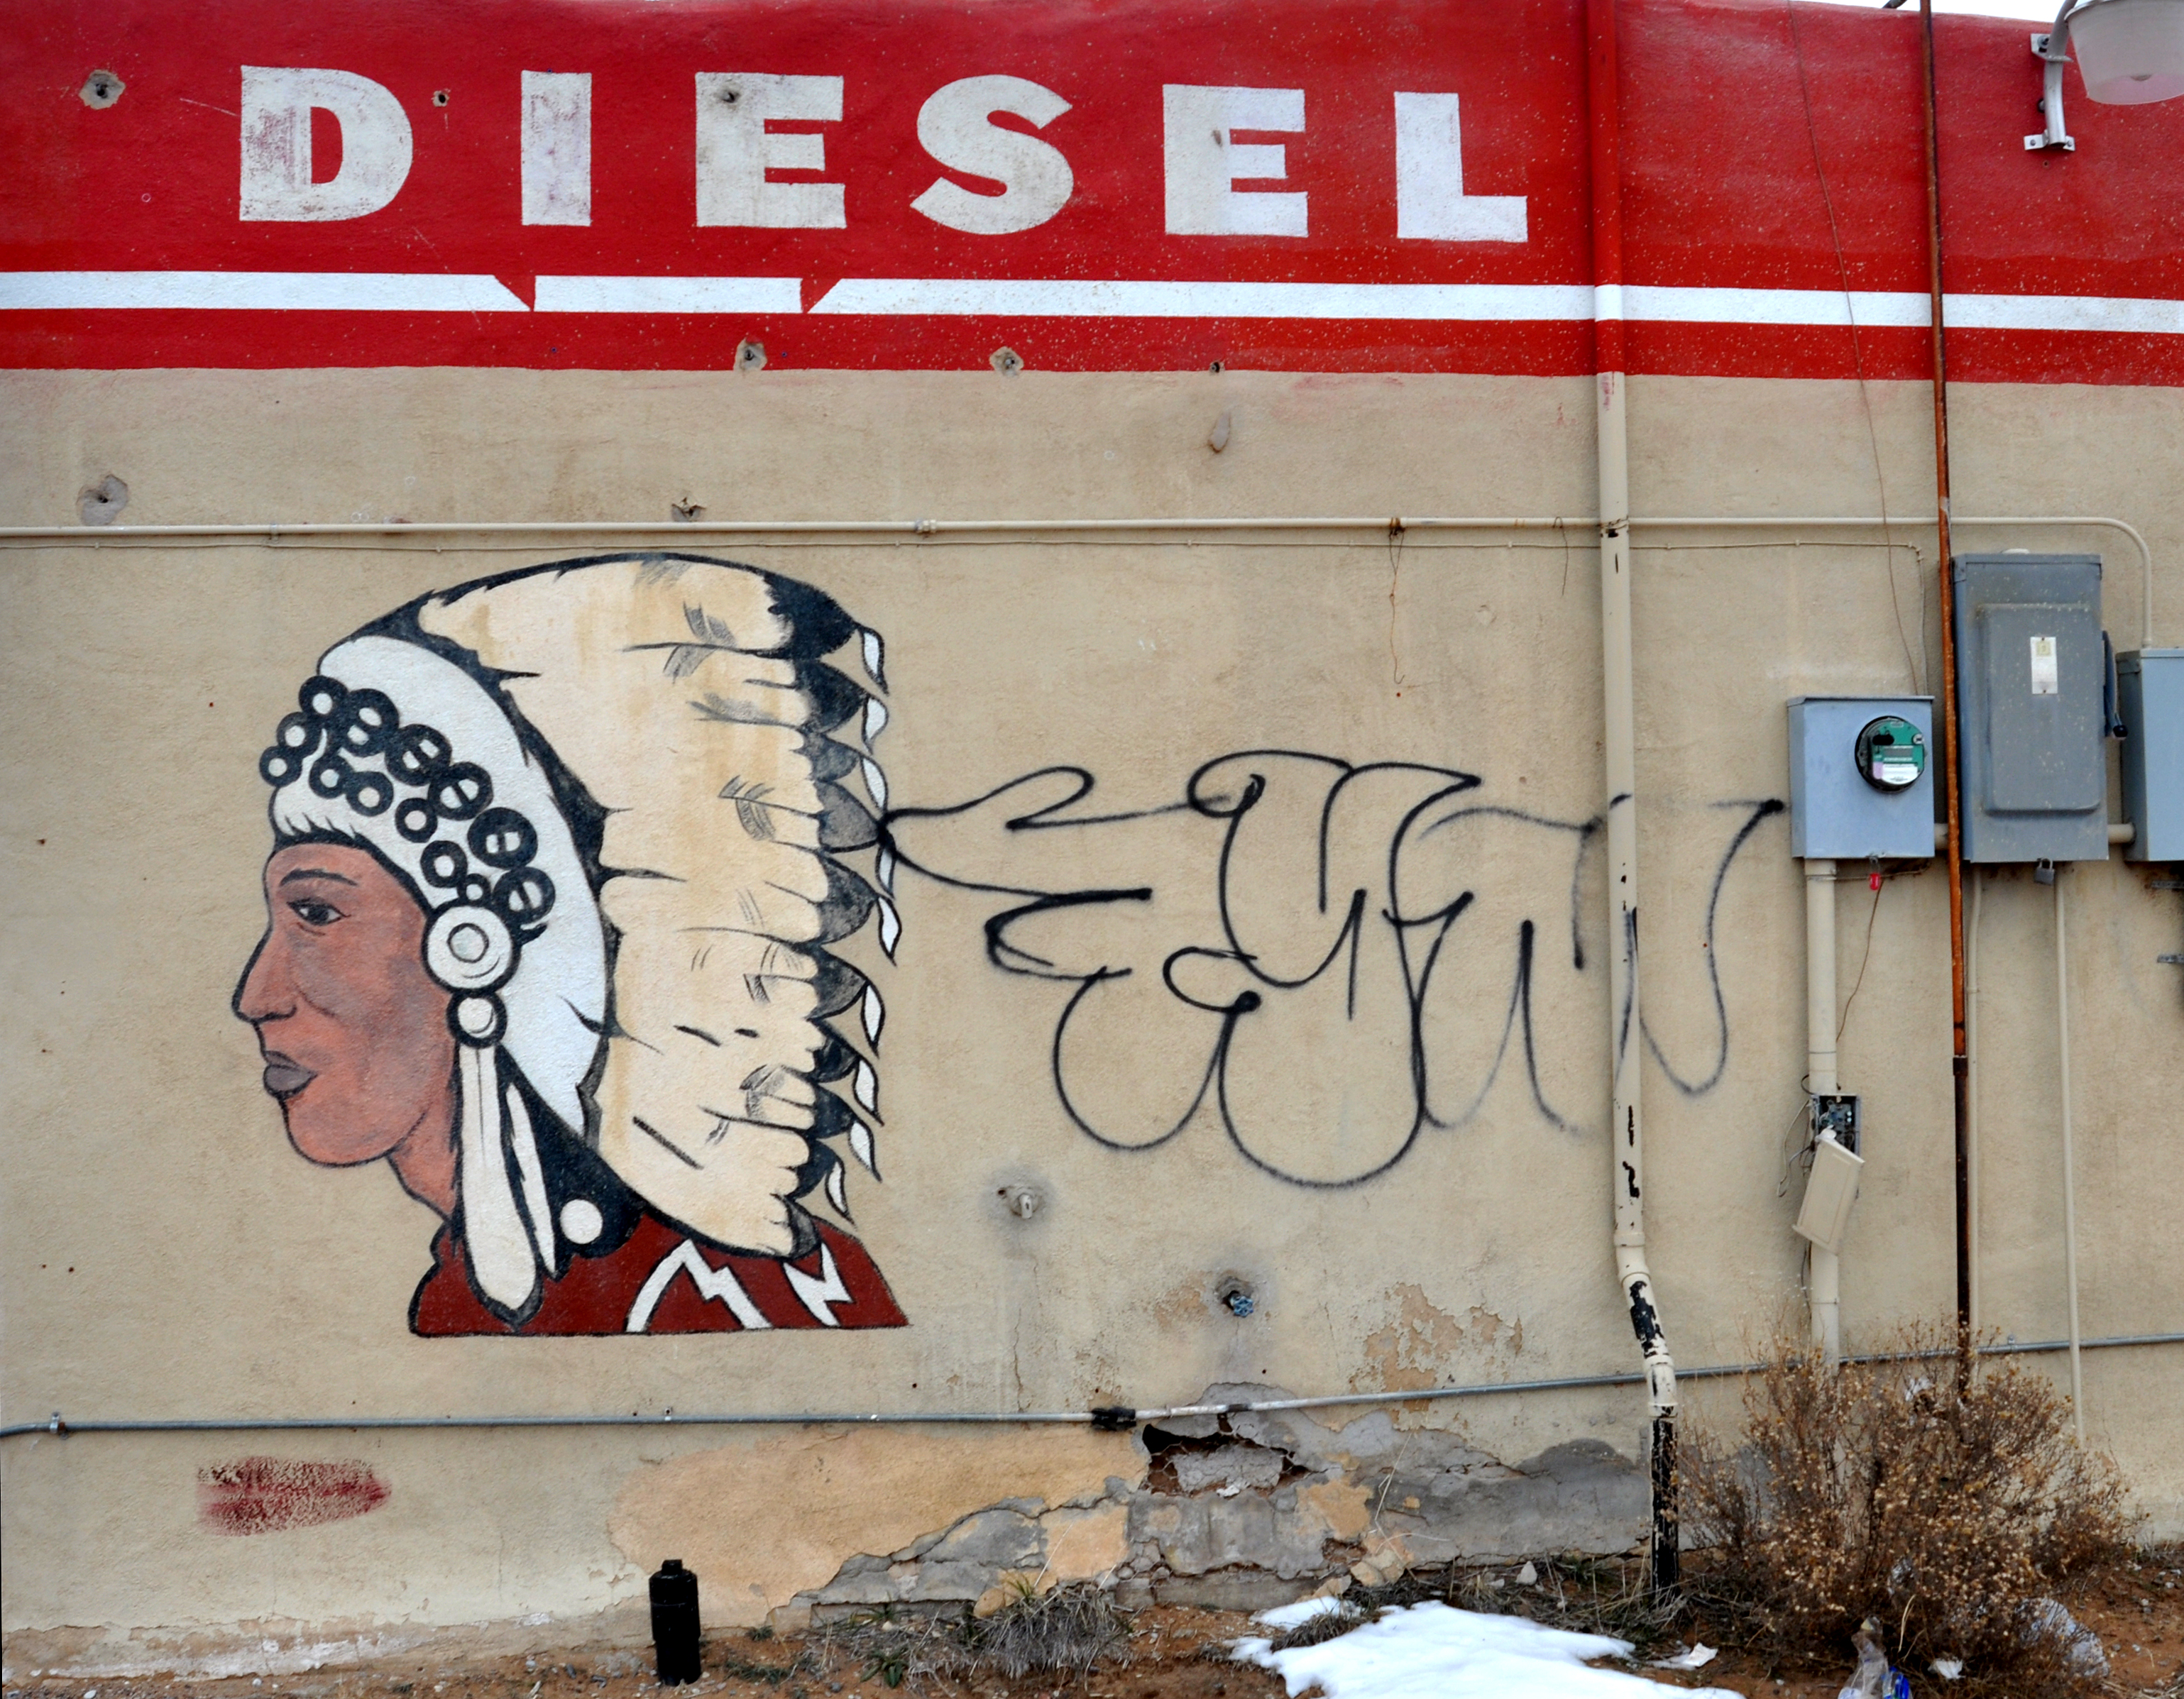 A painting of a Native American chief wearing a Plains Indian headdress adorns the abandoned Big Chief gas station on the Zia Pueblo in northern New Mexico, Dec. 2012.